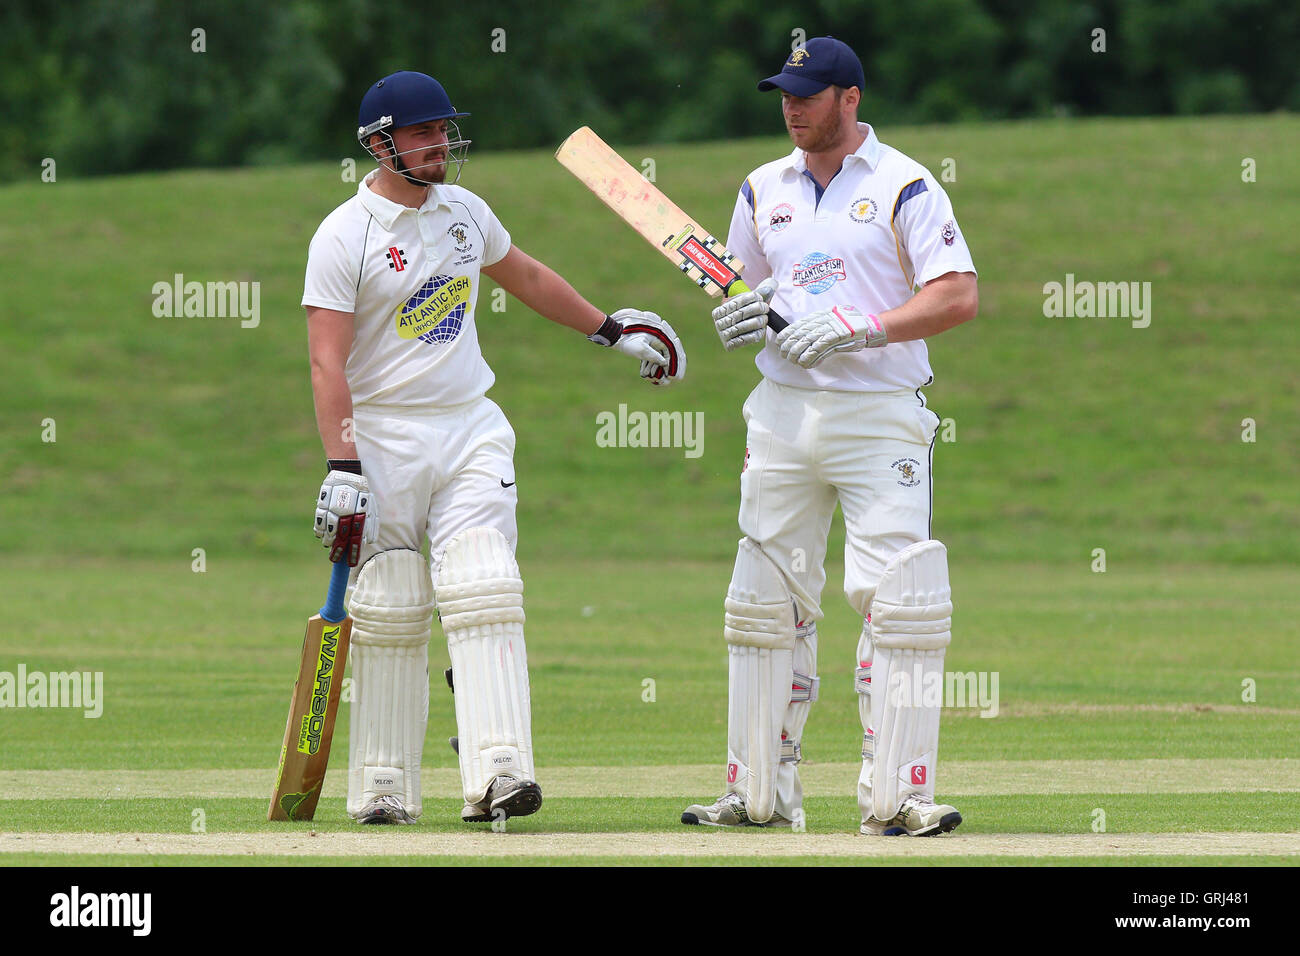 Ardleigh Green CC vs Westcliff-on-Sea CC, Shepherd Neame Essex League Cricket at Central Park on 11th June 2016 Stock Photo